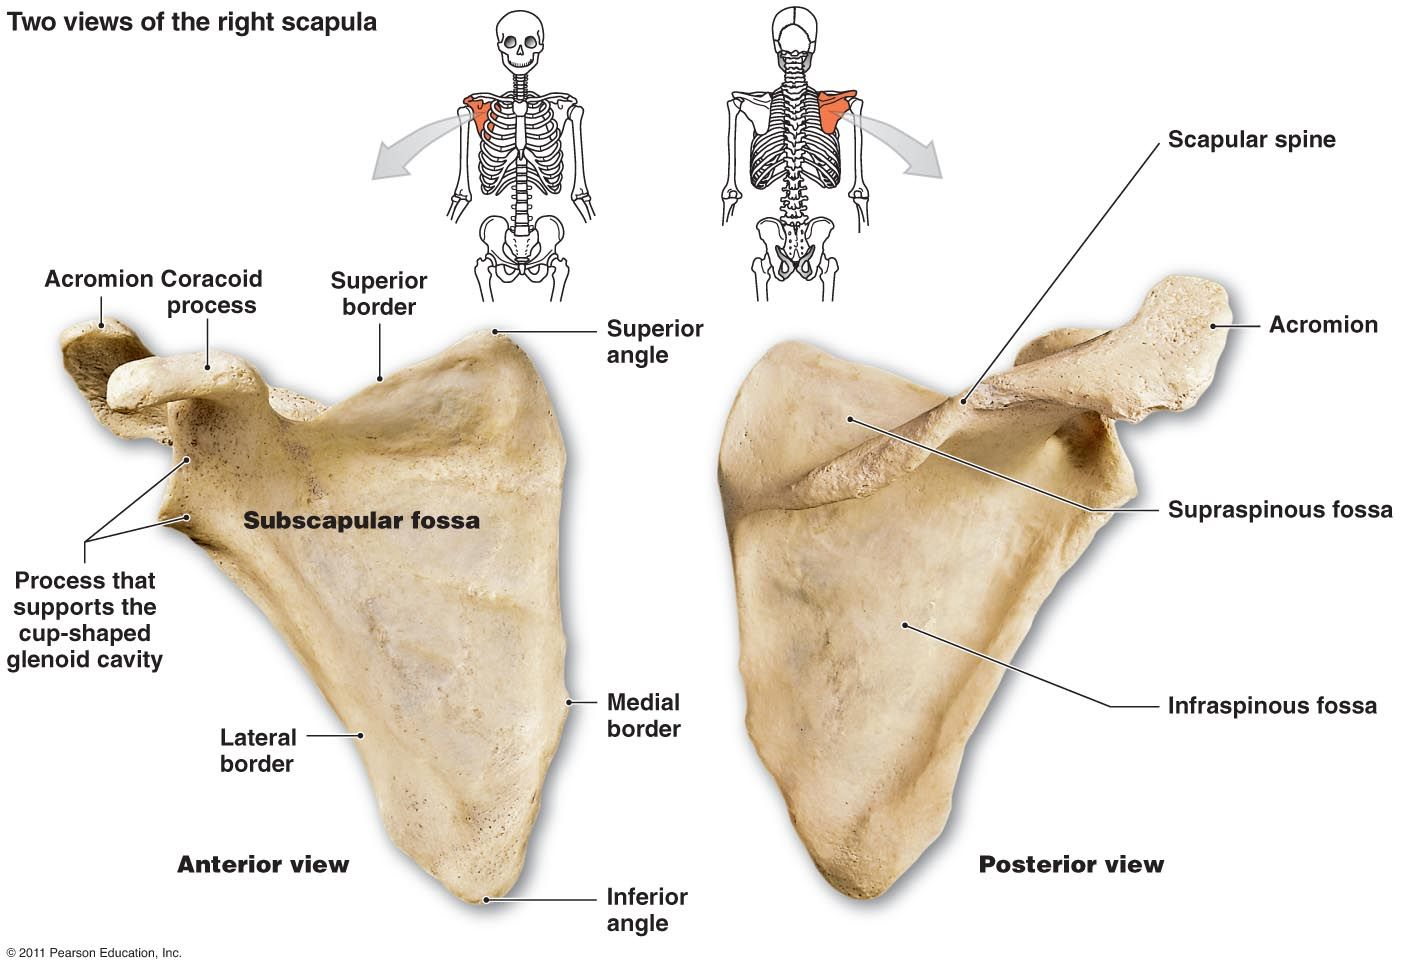 Scapula Pectoral Girdle 4 Clavicle Scapula The Shoulder Bone